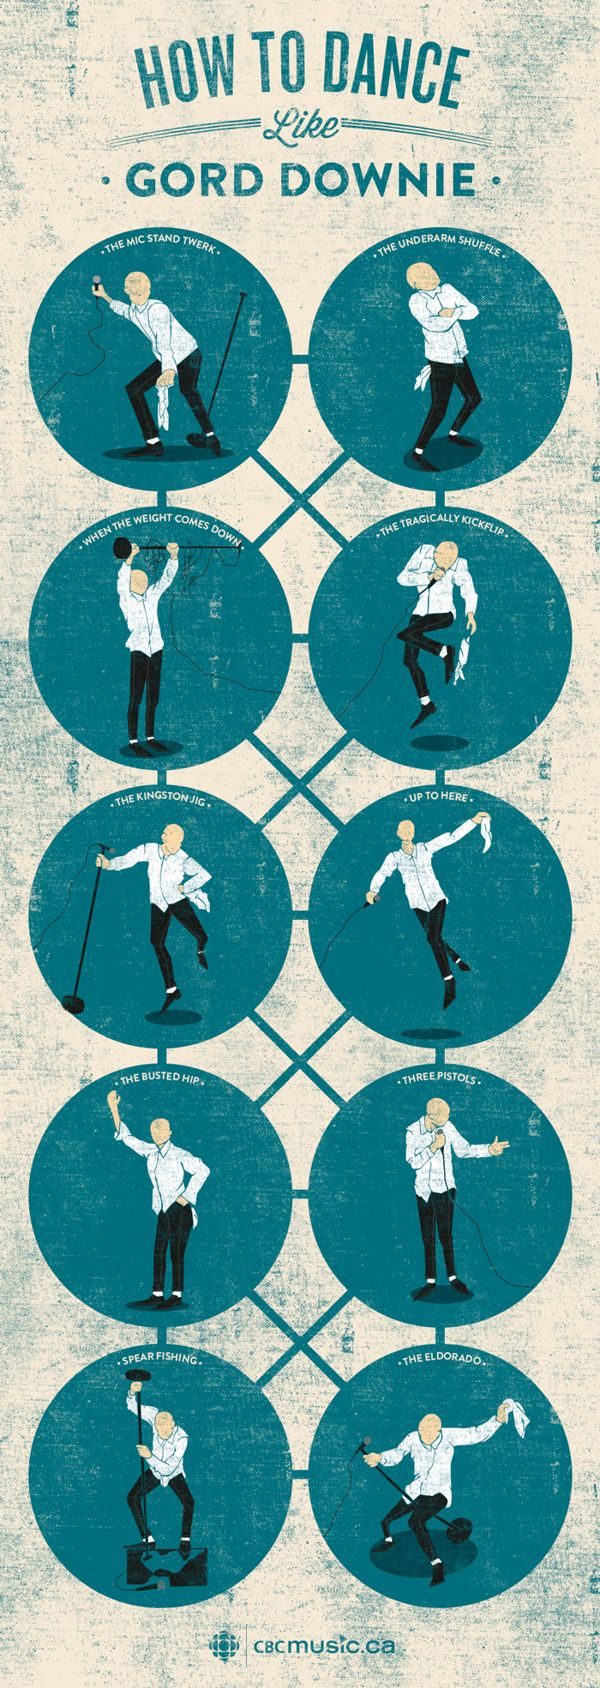 How to dance like Gord Downie infographic on Behance